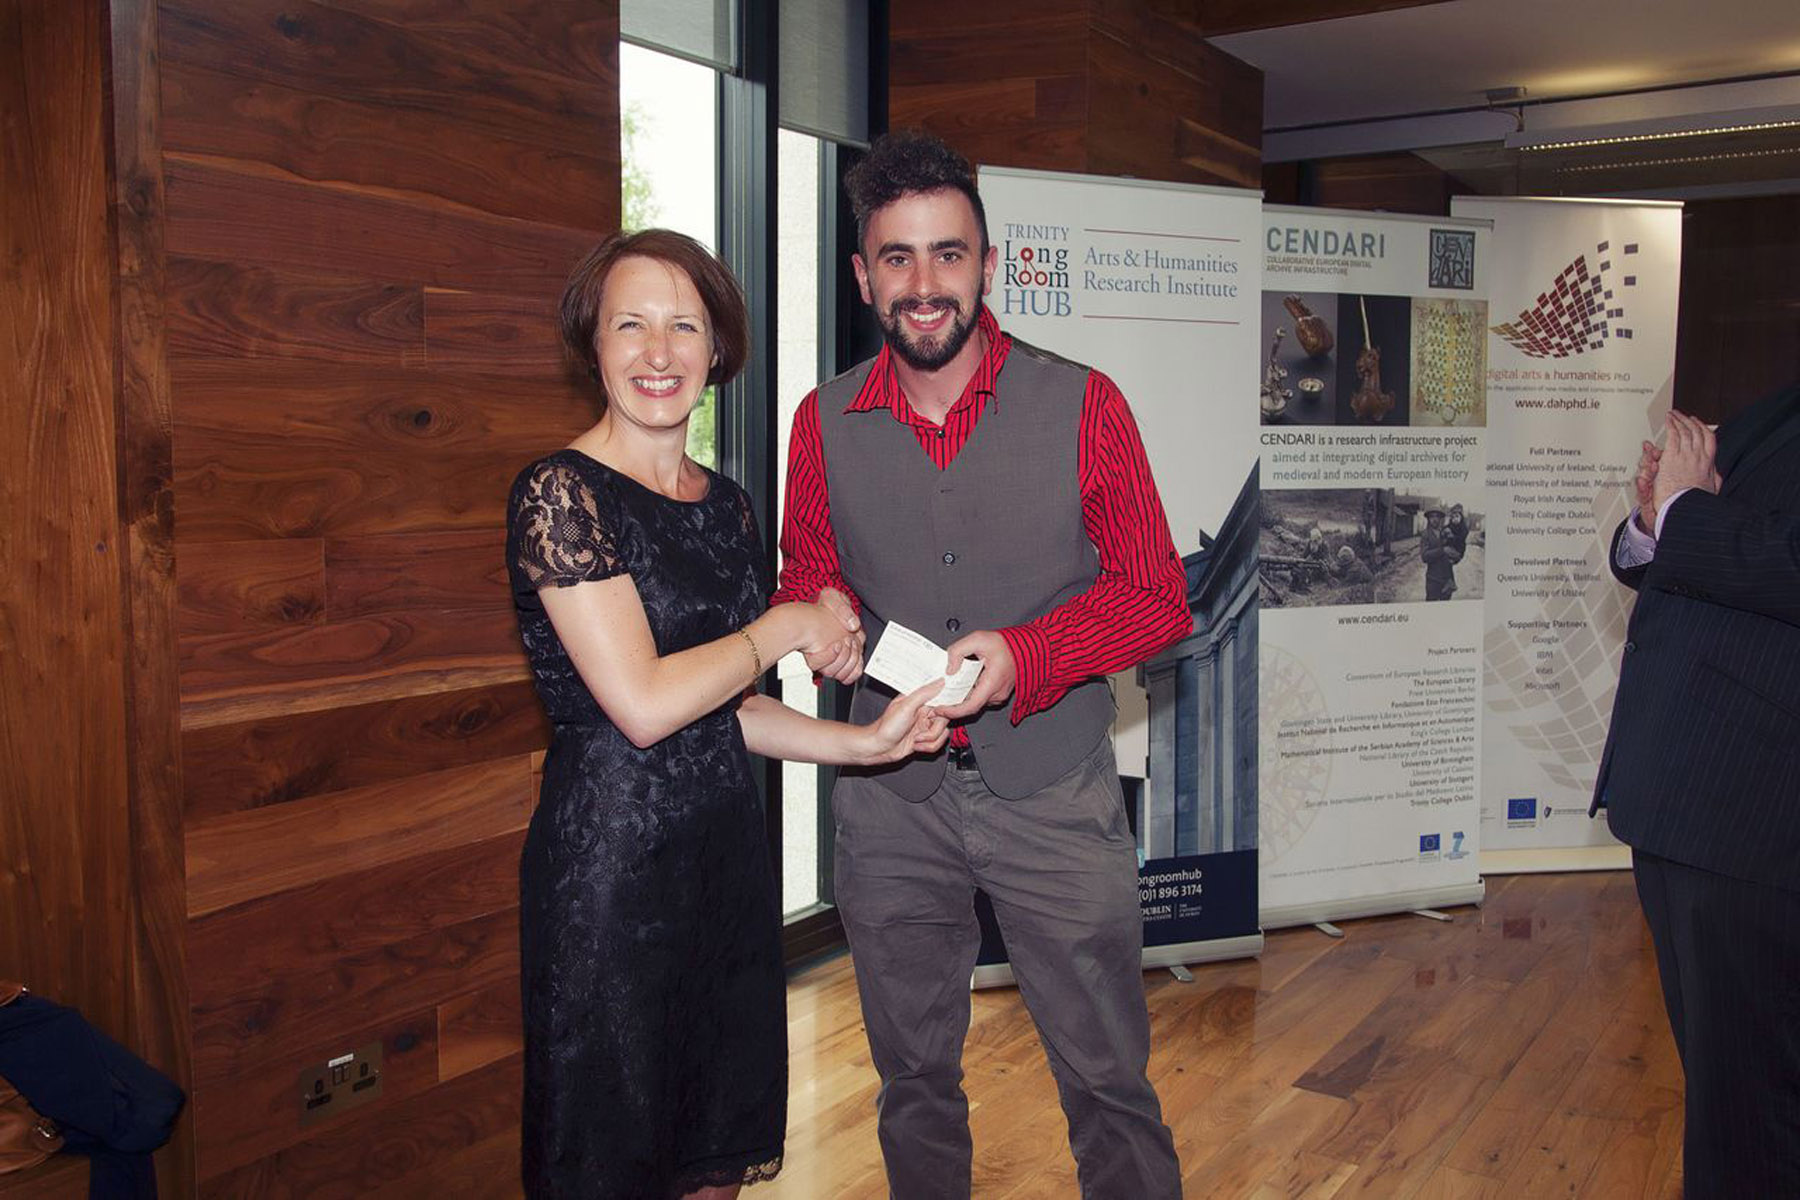 being awarded the JPR prize